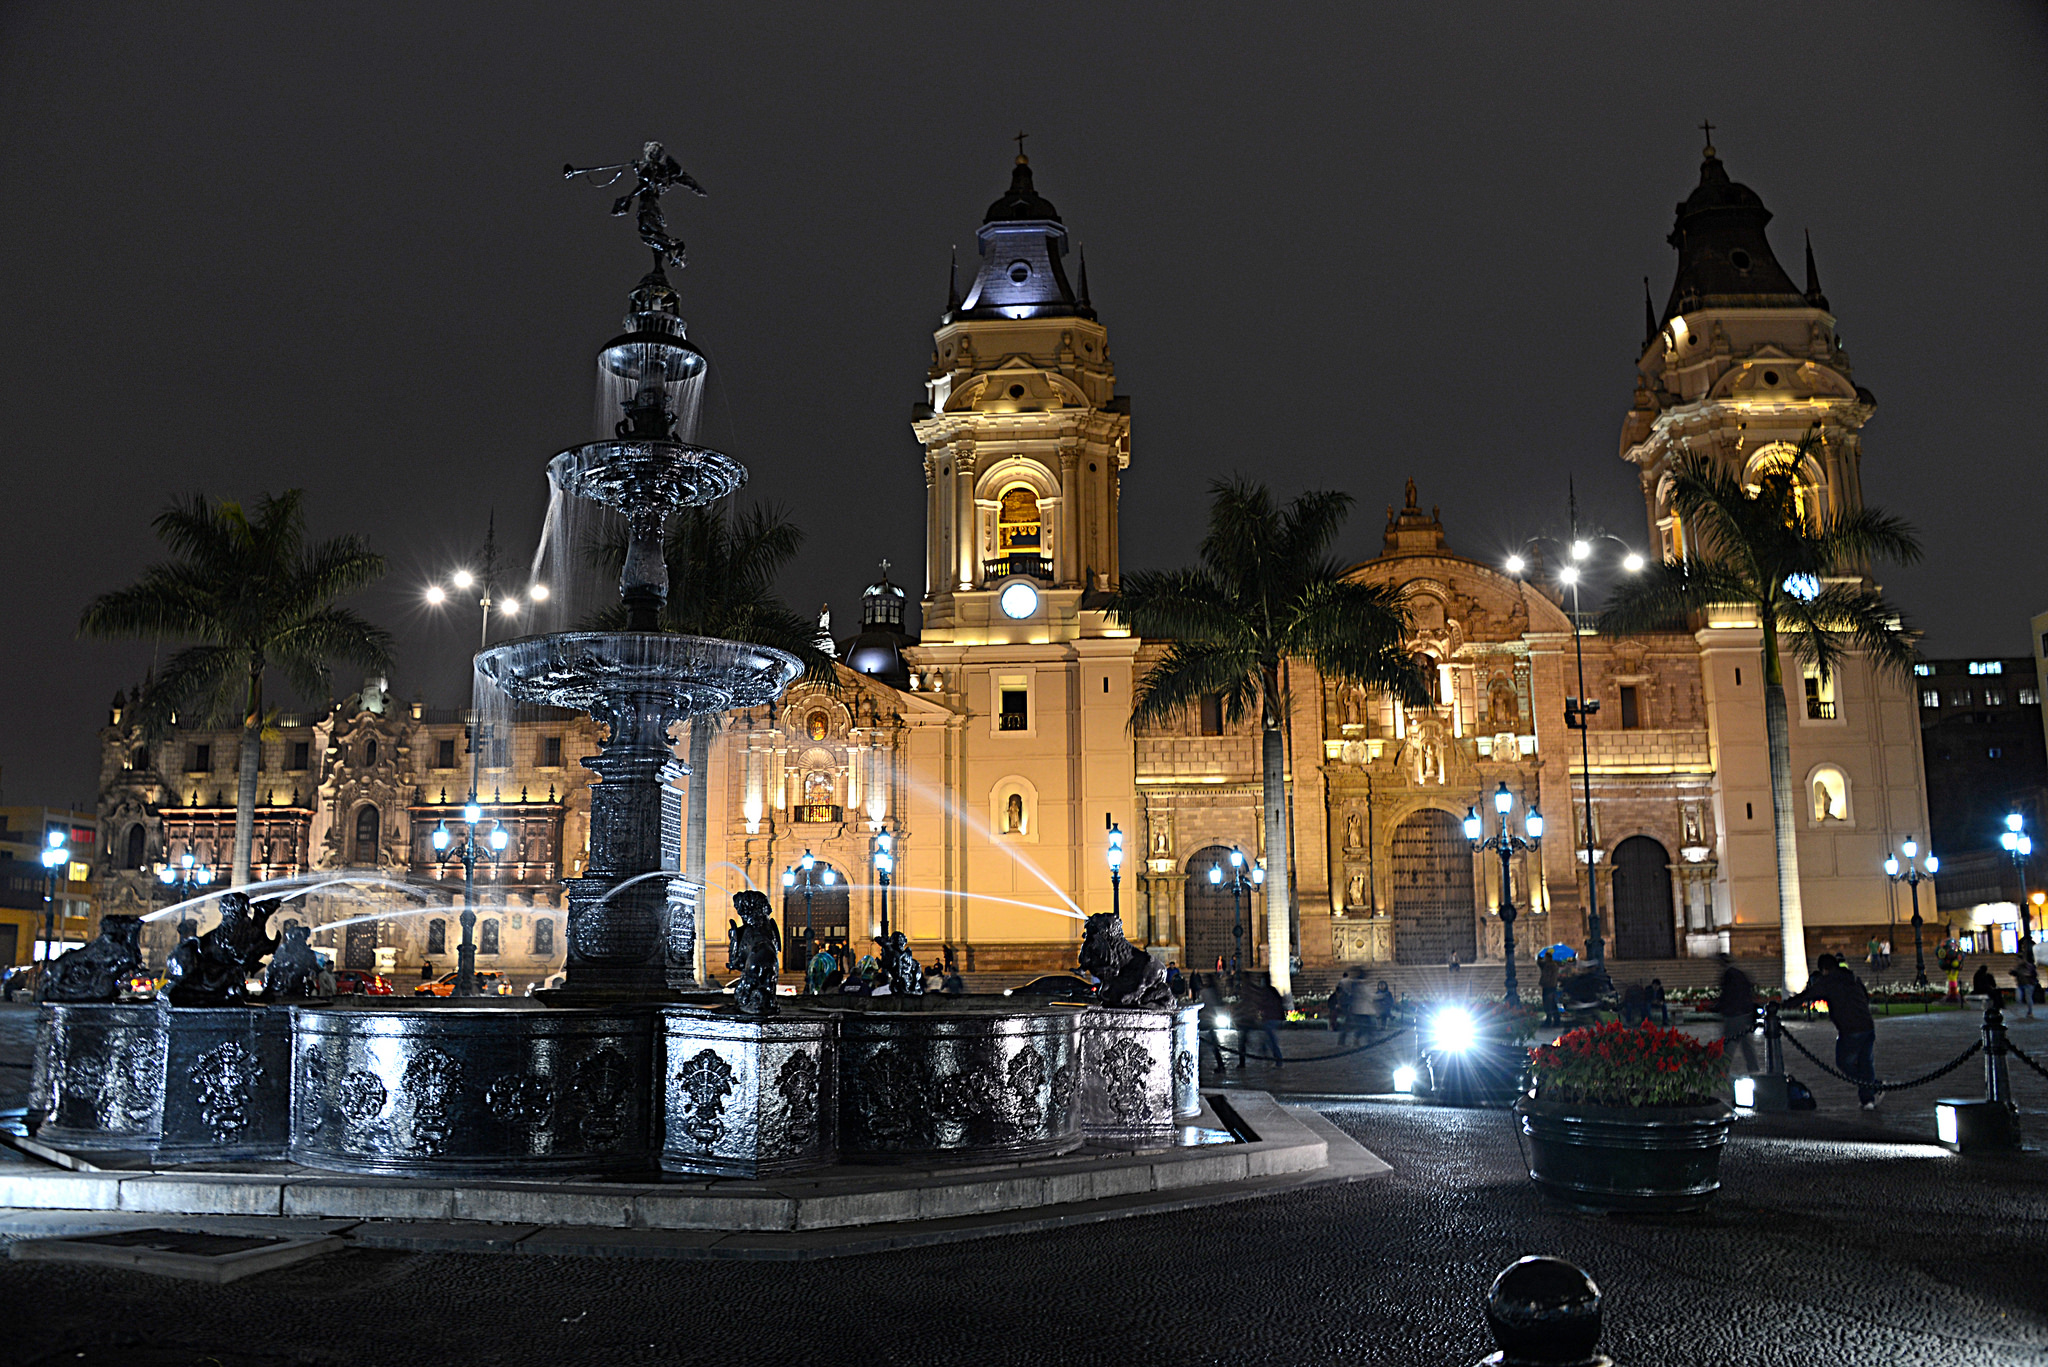 Day 1: LIMA